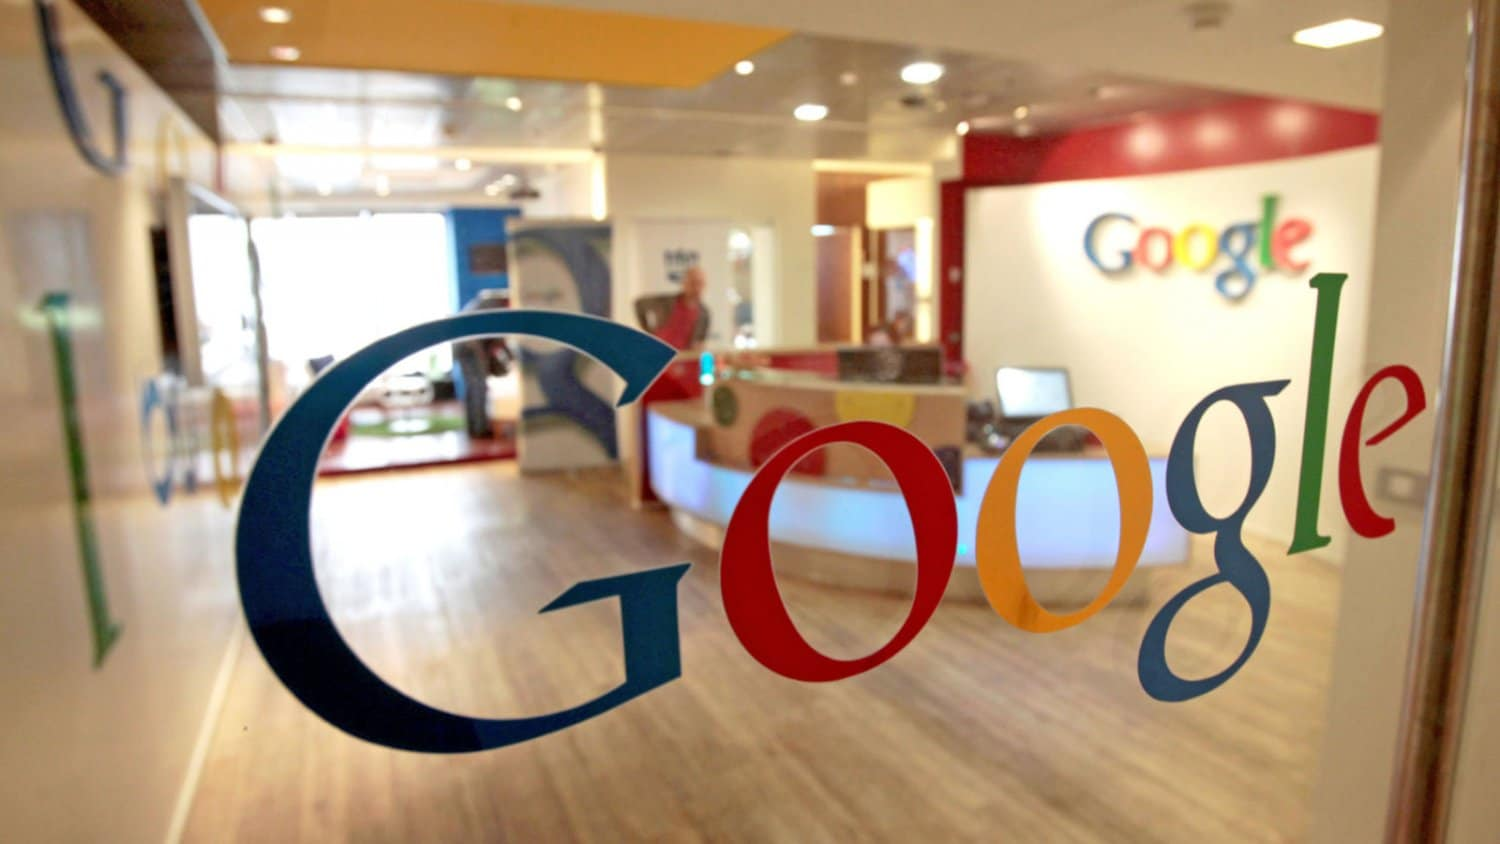 Google got 1.6m patients' data 'inappropriately'